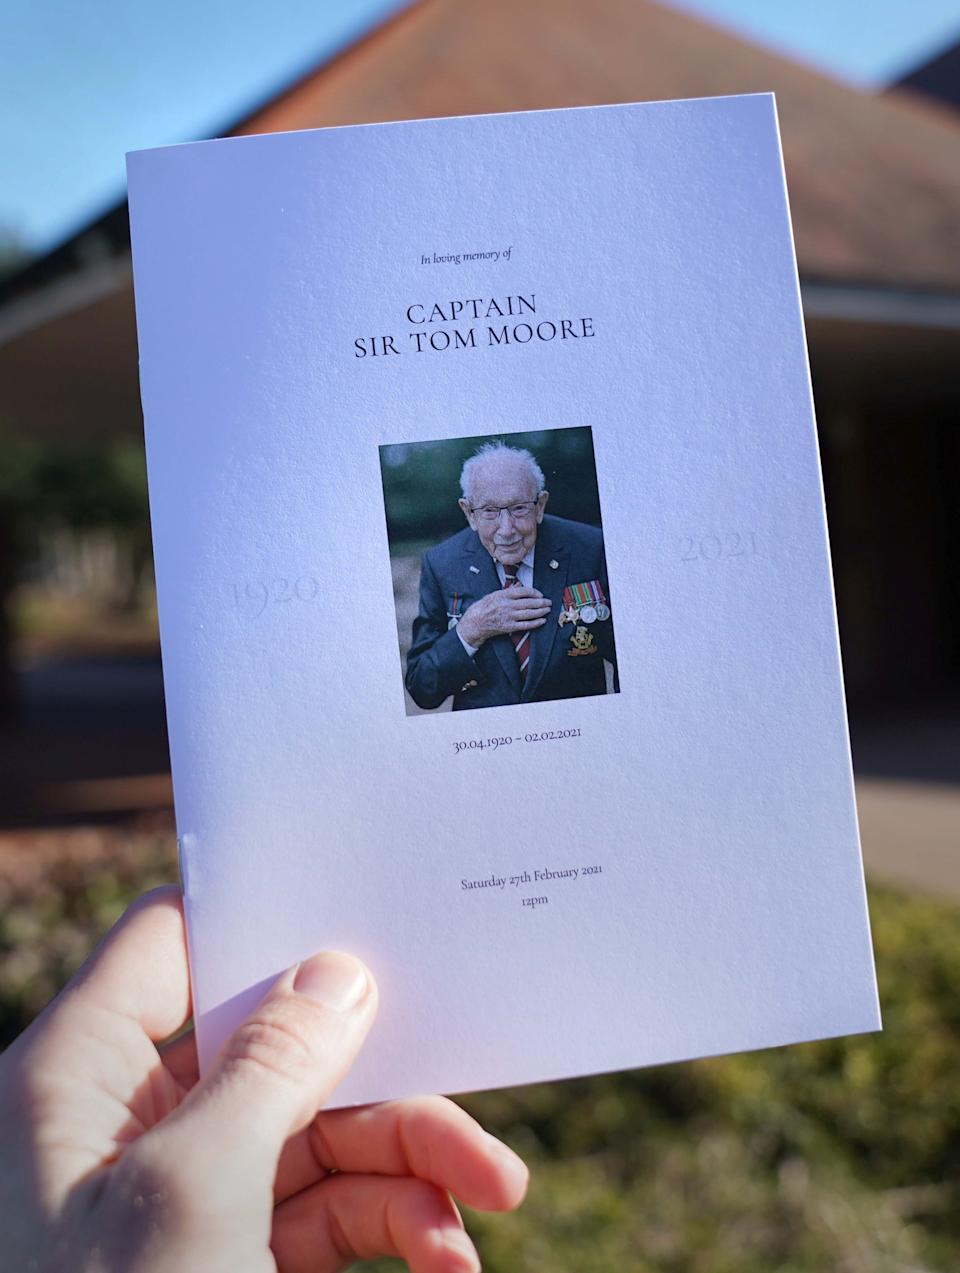 The Order of Service for the funeral of Captain Sir Tom Moore is seen at Bedford Crematorium. (Photo: PA Images / Joe Giddens)